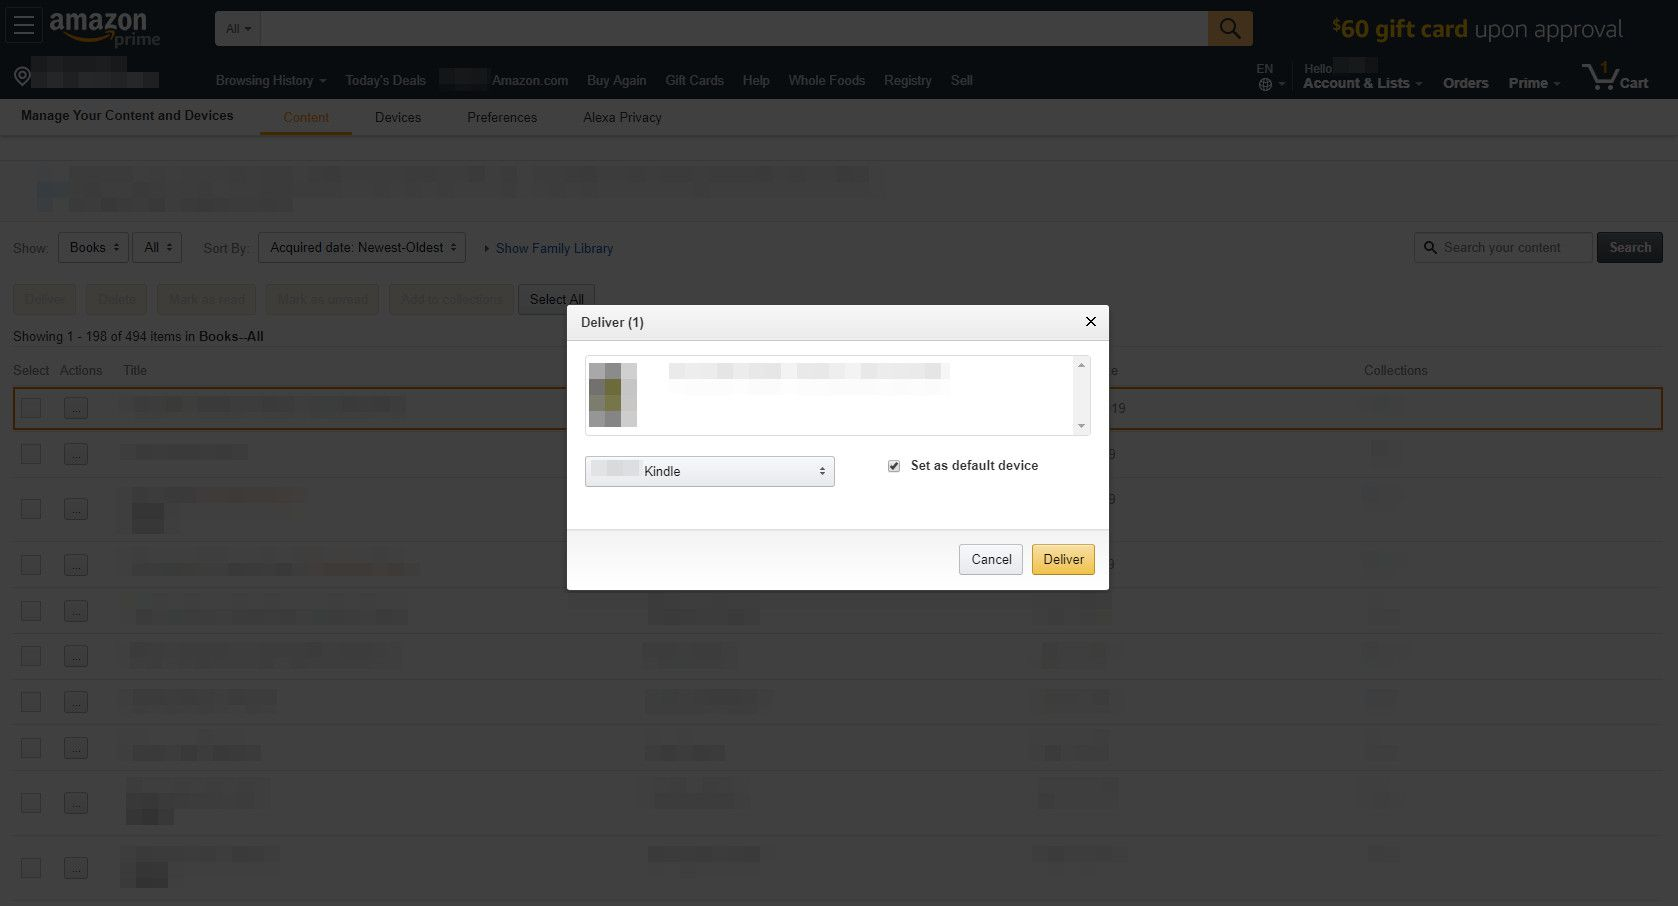 Amazon.com with Deliver dialog box displayed